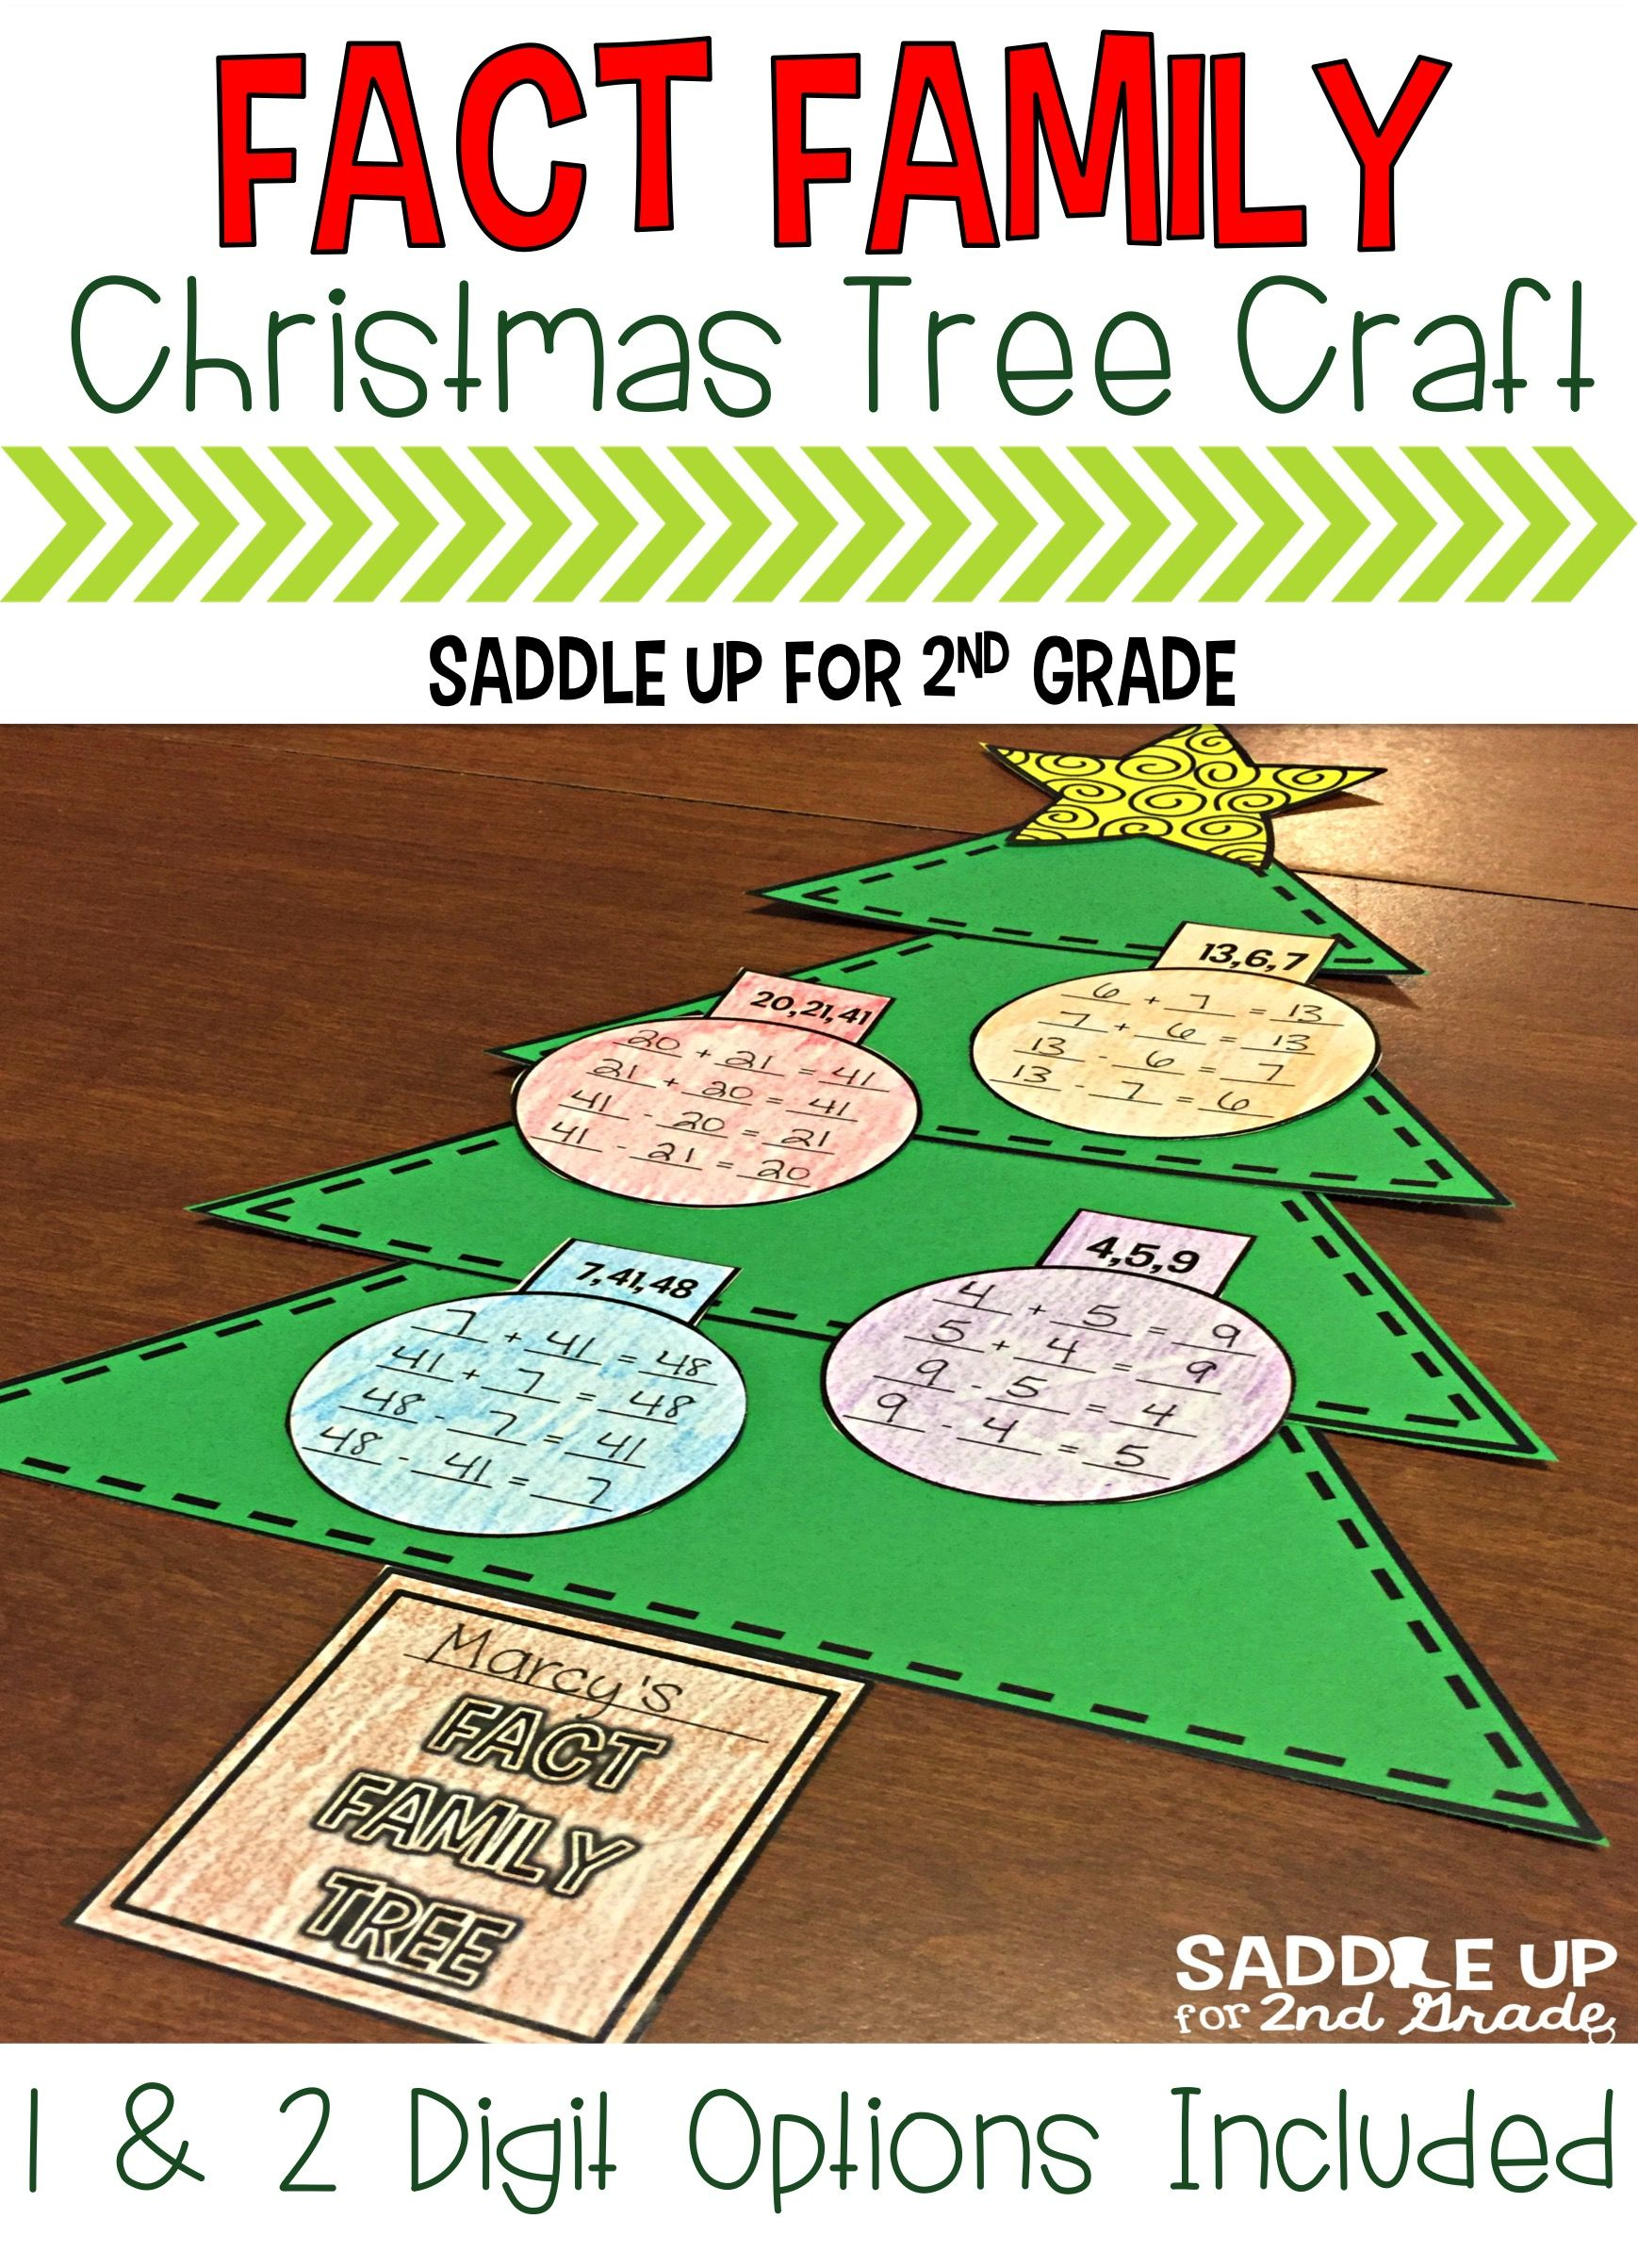 Are you looking for a fun, easy way to review fact families over the holidays? This product does just that. There is practice for single and double digit fact families. It includes 4 pages of single digit fact families, 4 pages of double digit fact families, and a Christmas tree craftivity template.